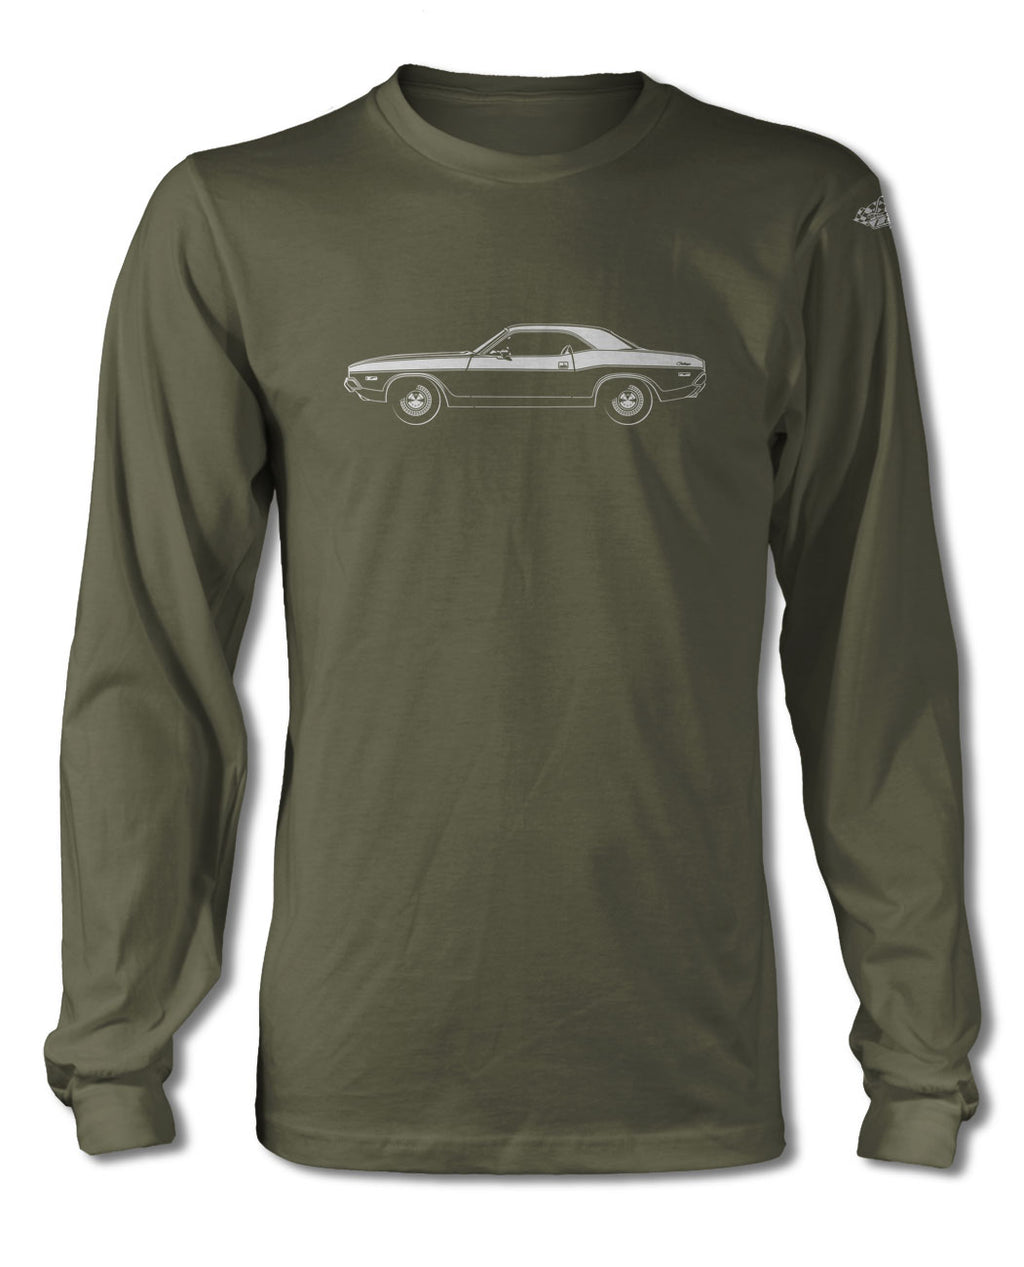 1972 Dodge Challenger Base Coupe T-Shirt - Long Sleeves - Side View